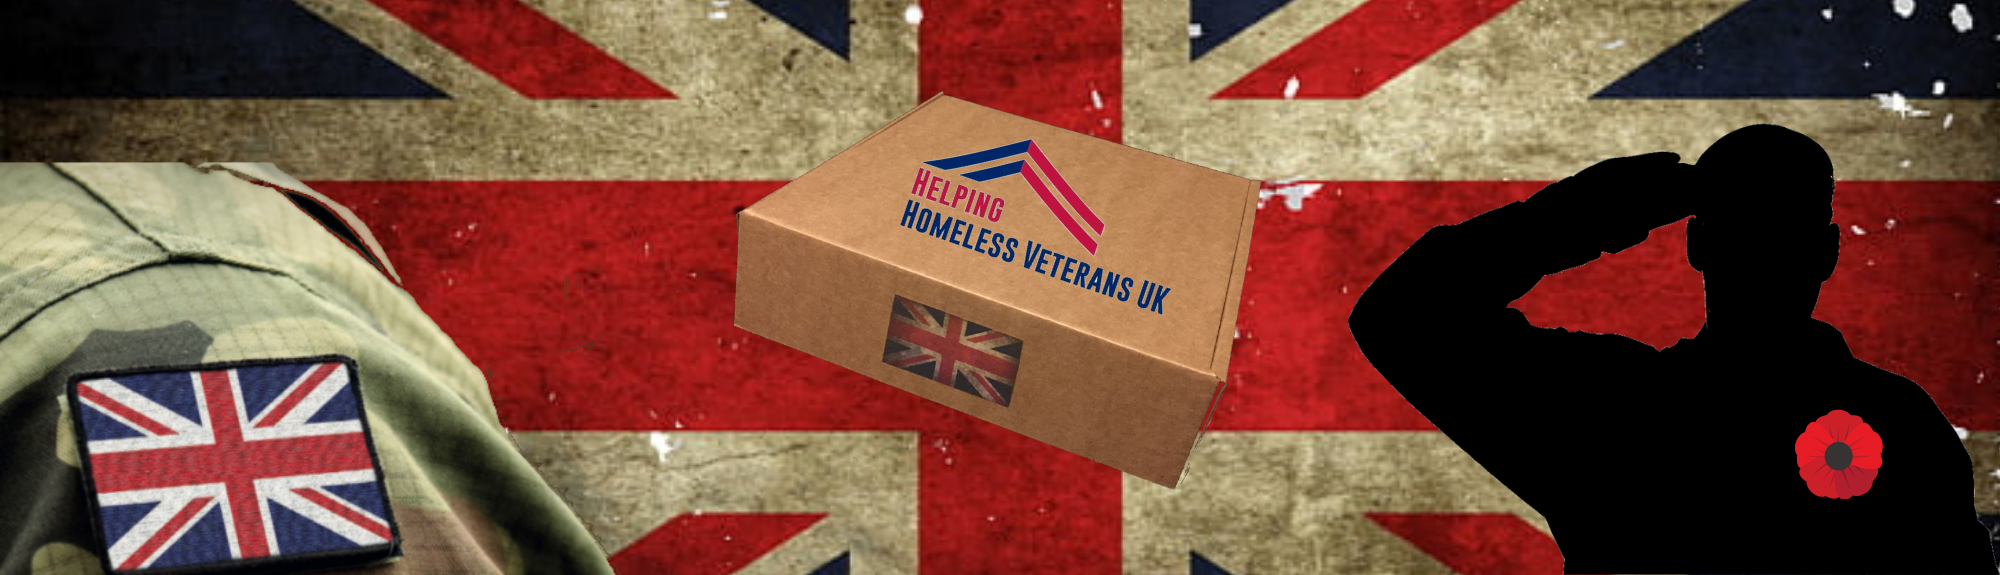 Jacked Bull Nutrition working with Helping homeless veterans UK